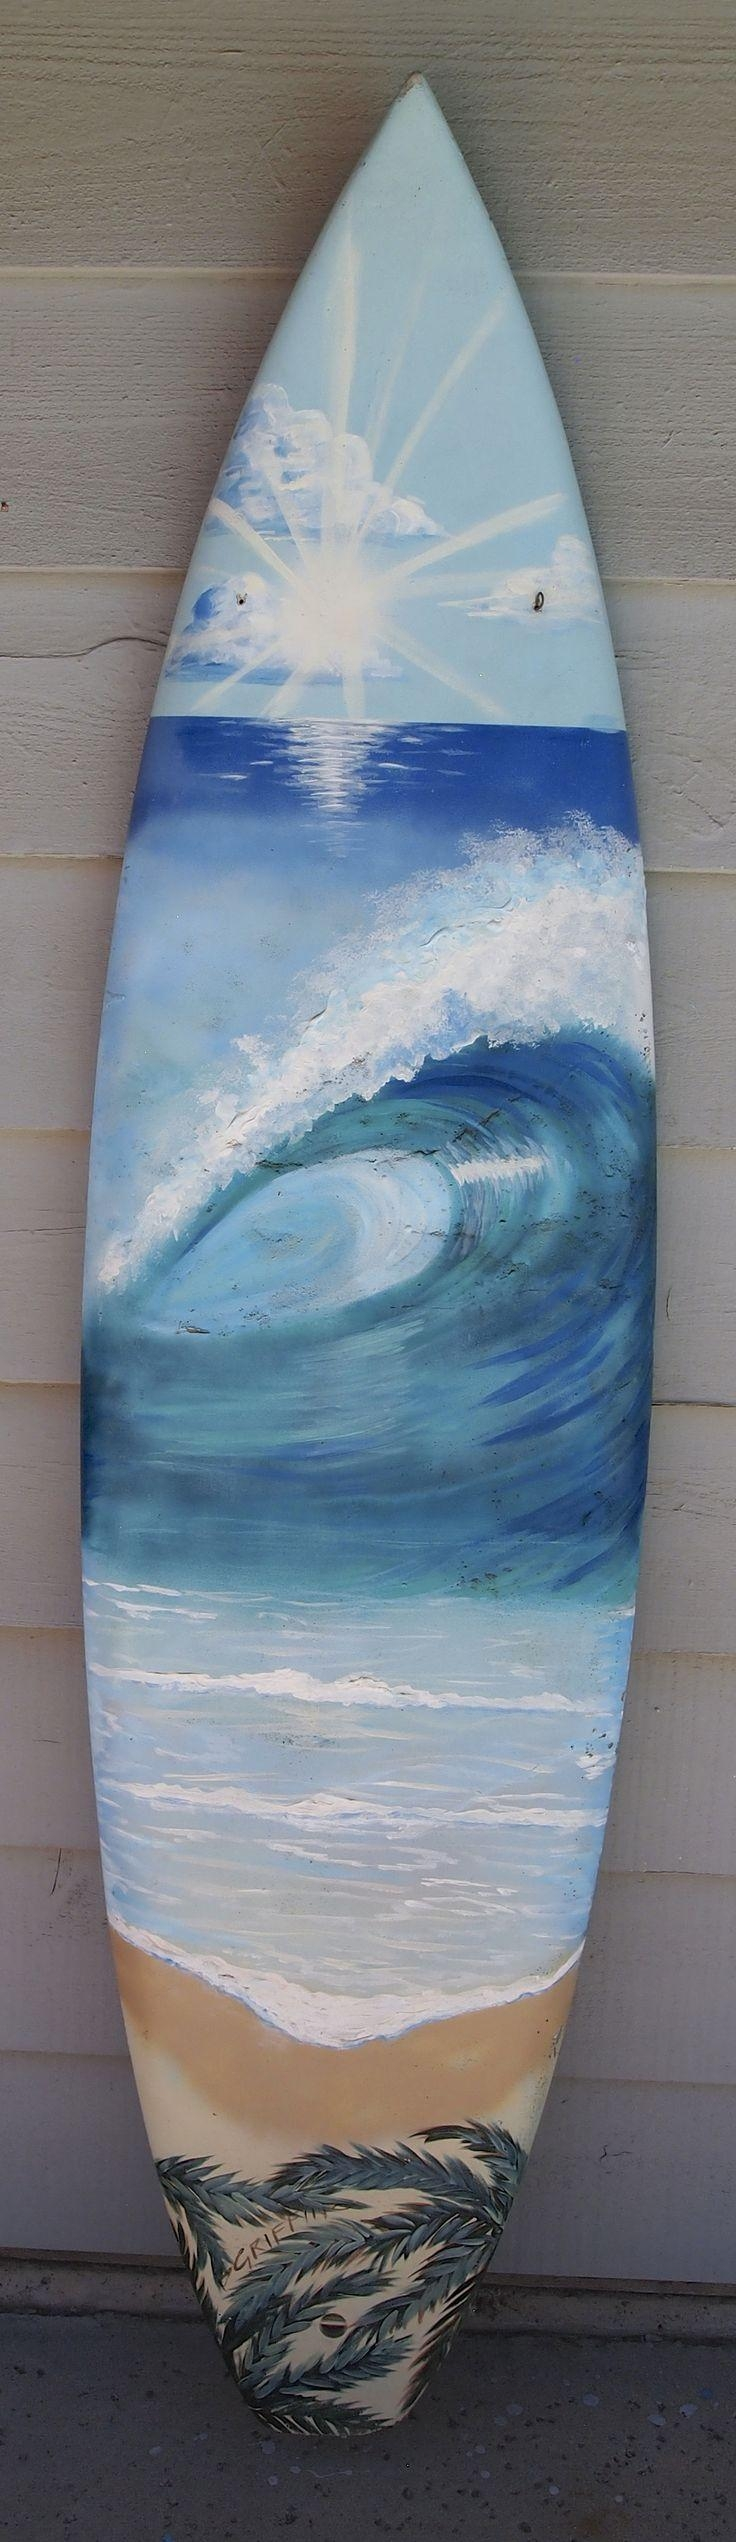 12 Best Surfboard Wall Art Murals Images On Pinterest | Griffins With Regard To Surf Board Wall Art (View 6 of 20)